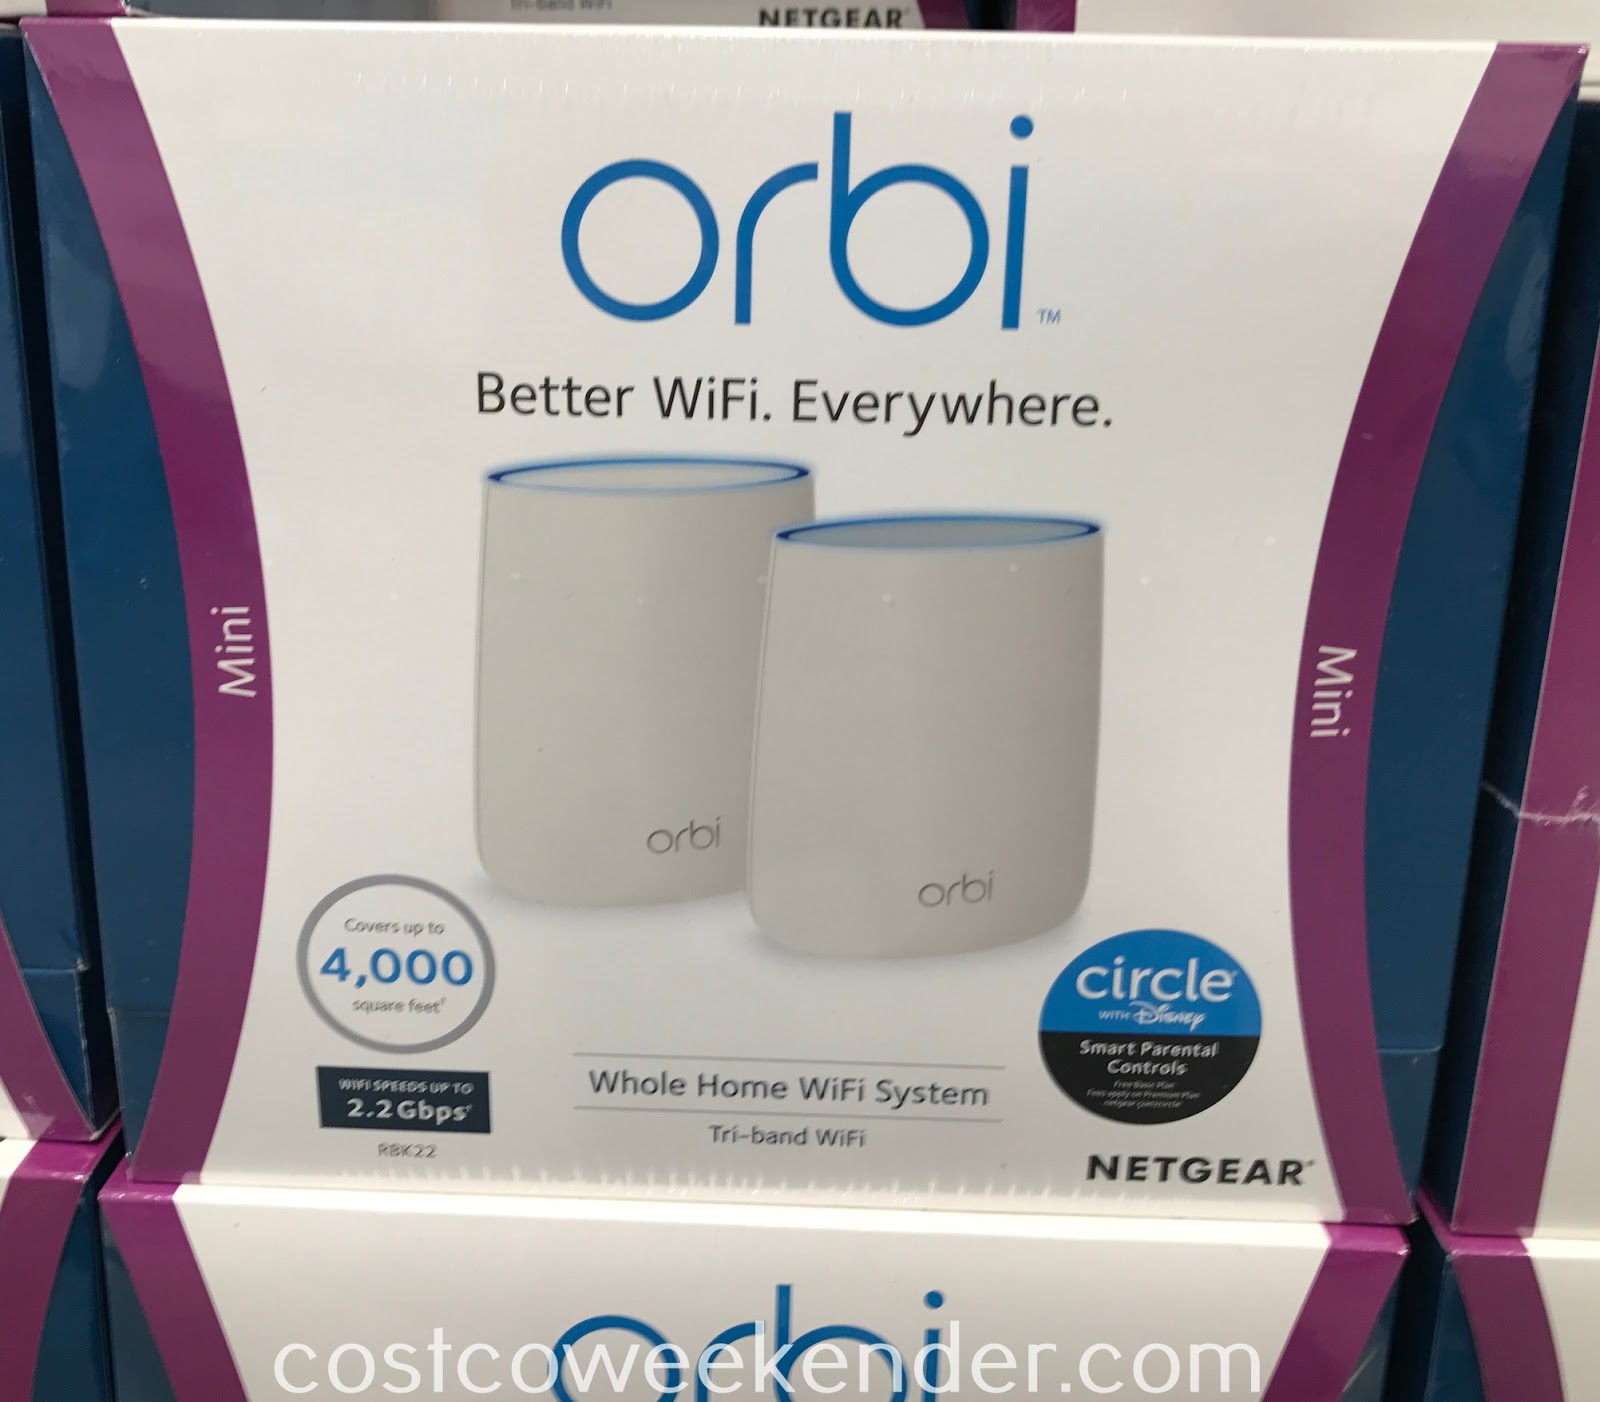 Costco 1218354 - Get a faster network speeds with the Netgear Orbi Home Wifi system